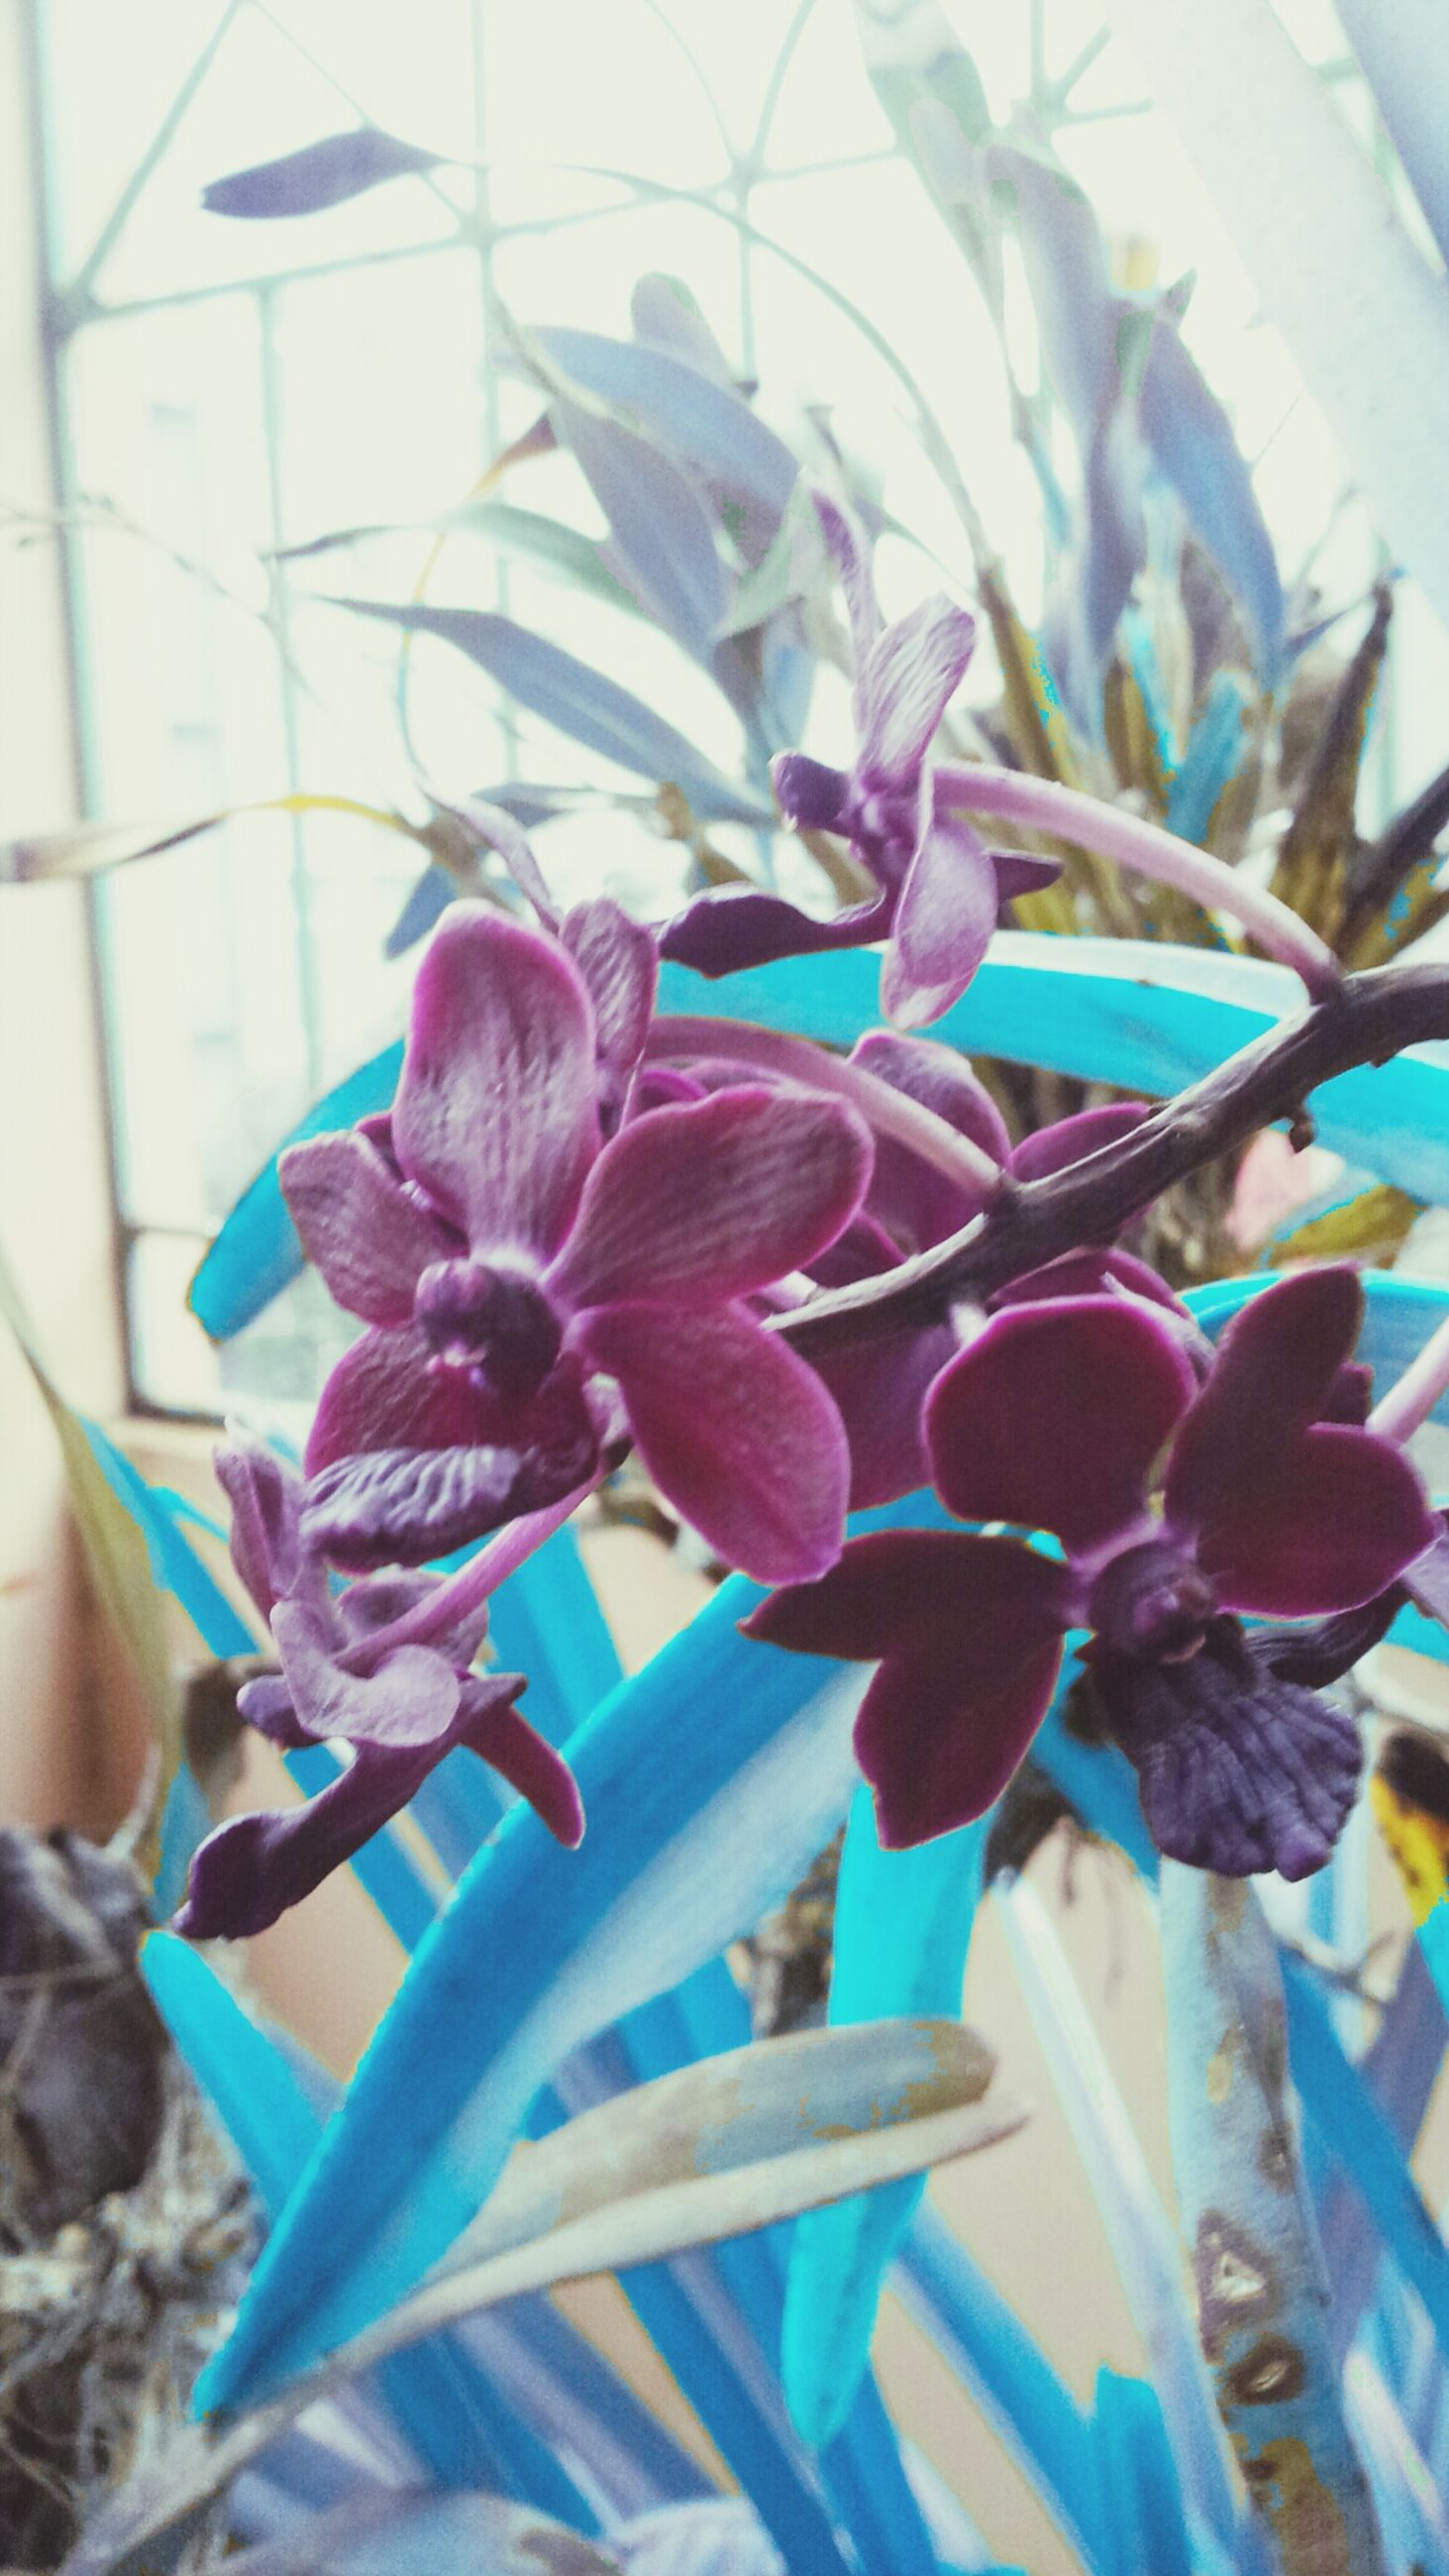 flower, fragility, petal, growth, freshness, plant, flower head, purple, blue, close-up, nature, blooming, beauty in nature, potted plant, leaf, day, stem, focus on foreground, no people, indoors